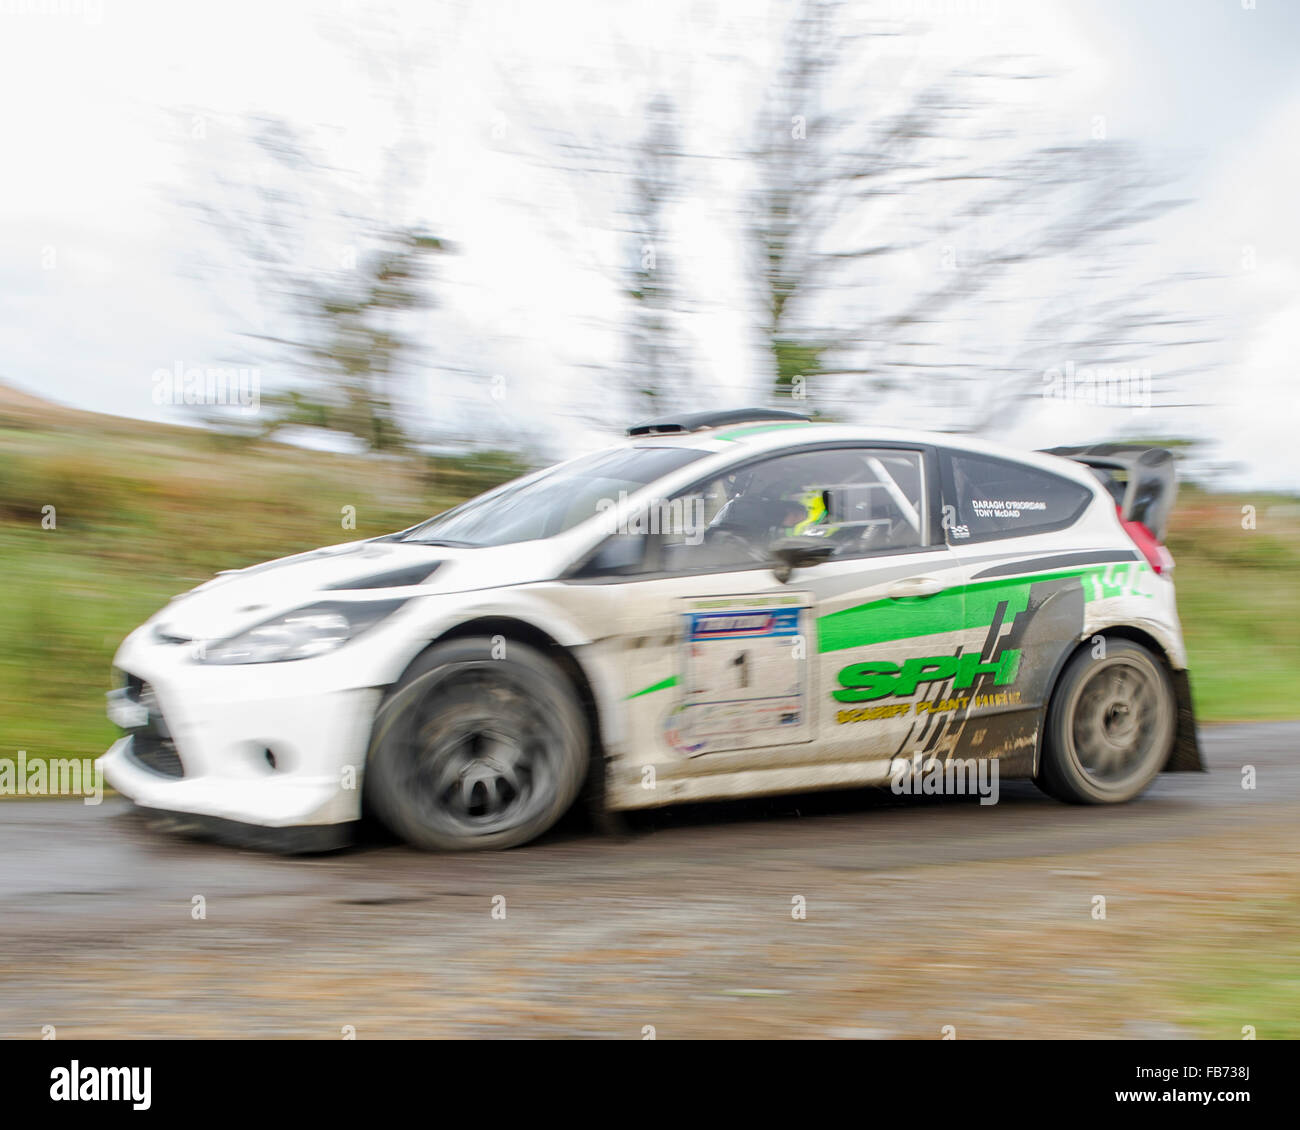 a-rally-car-participating-in-the-2015-fa